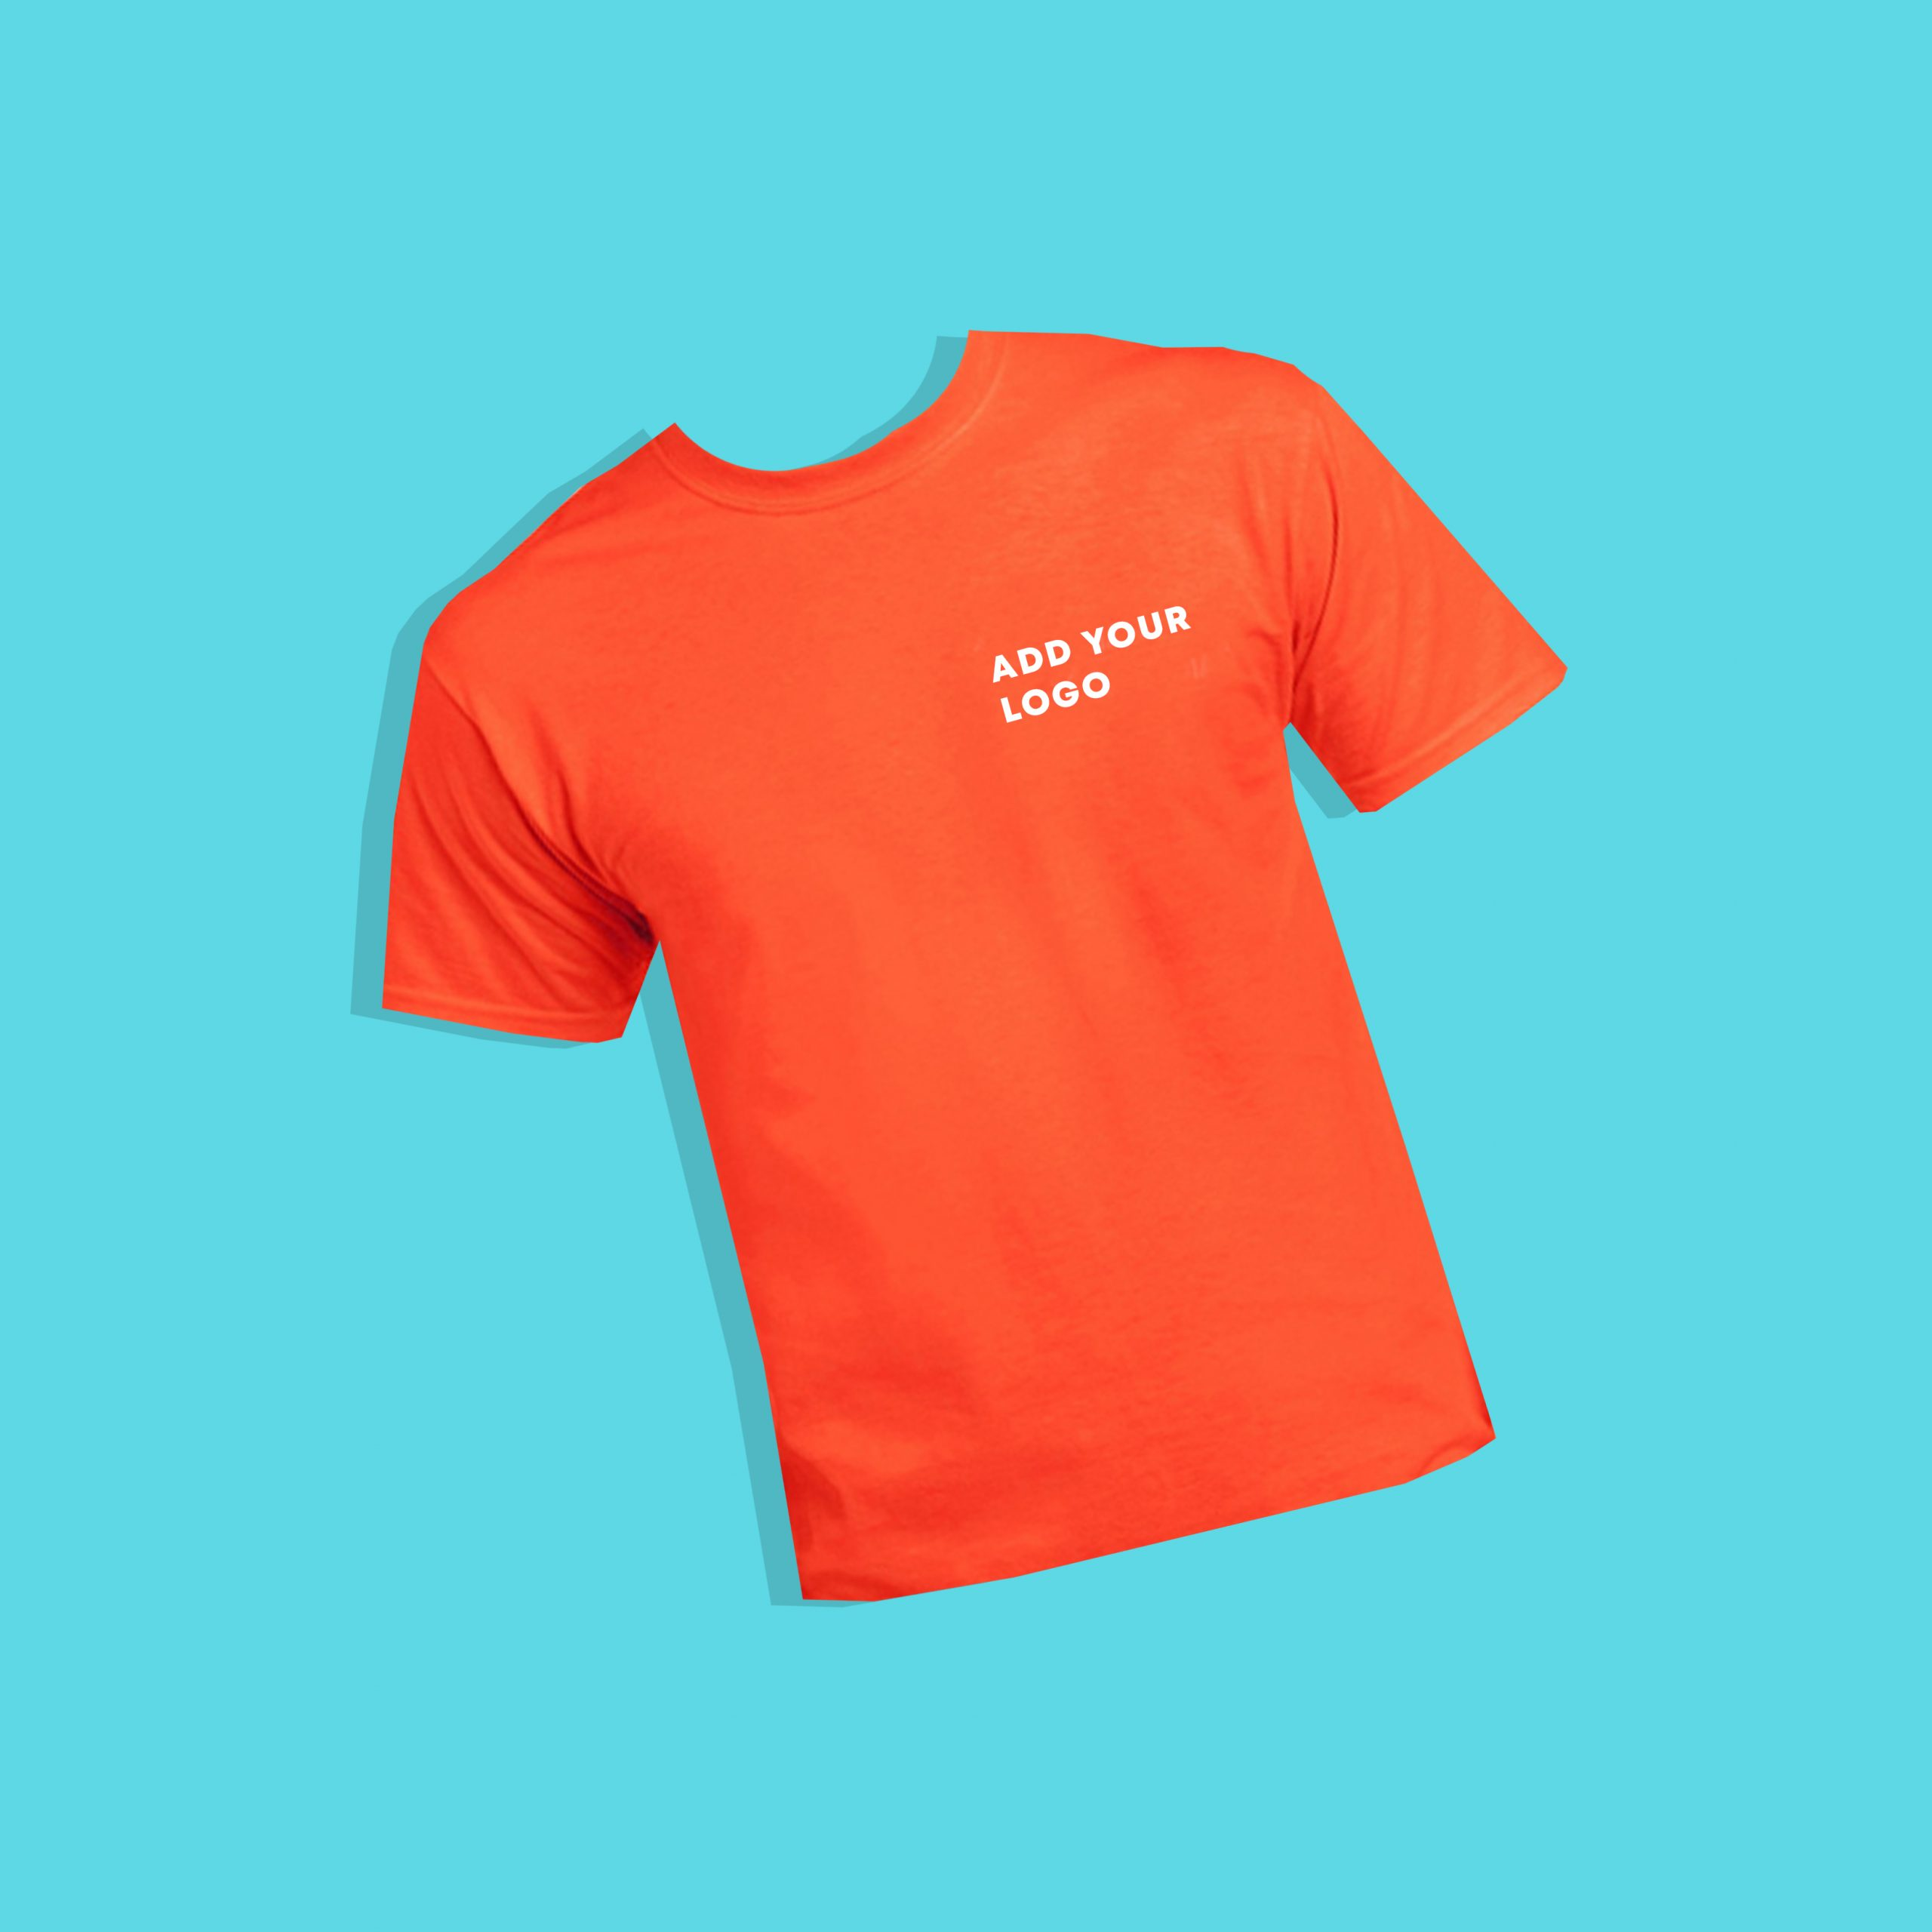 branded t-shirts for amazing virtual campaigns